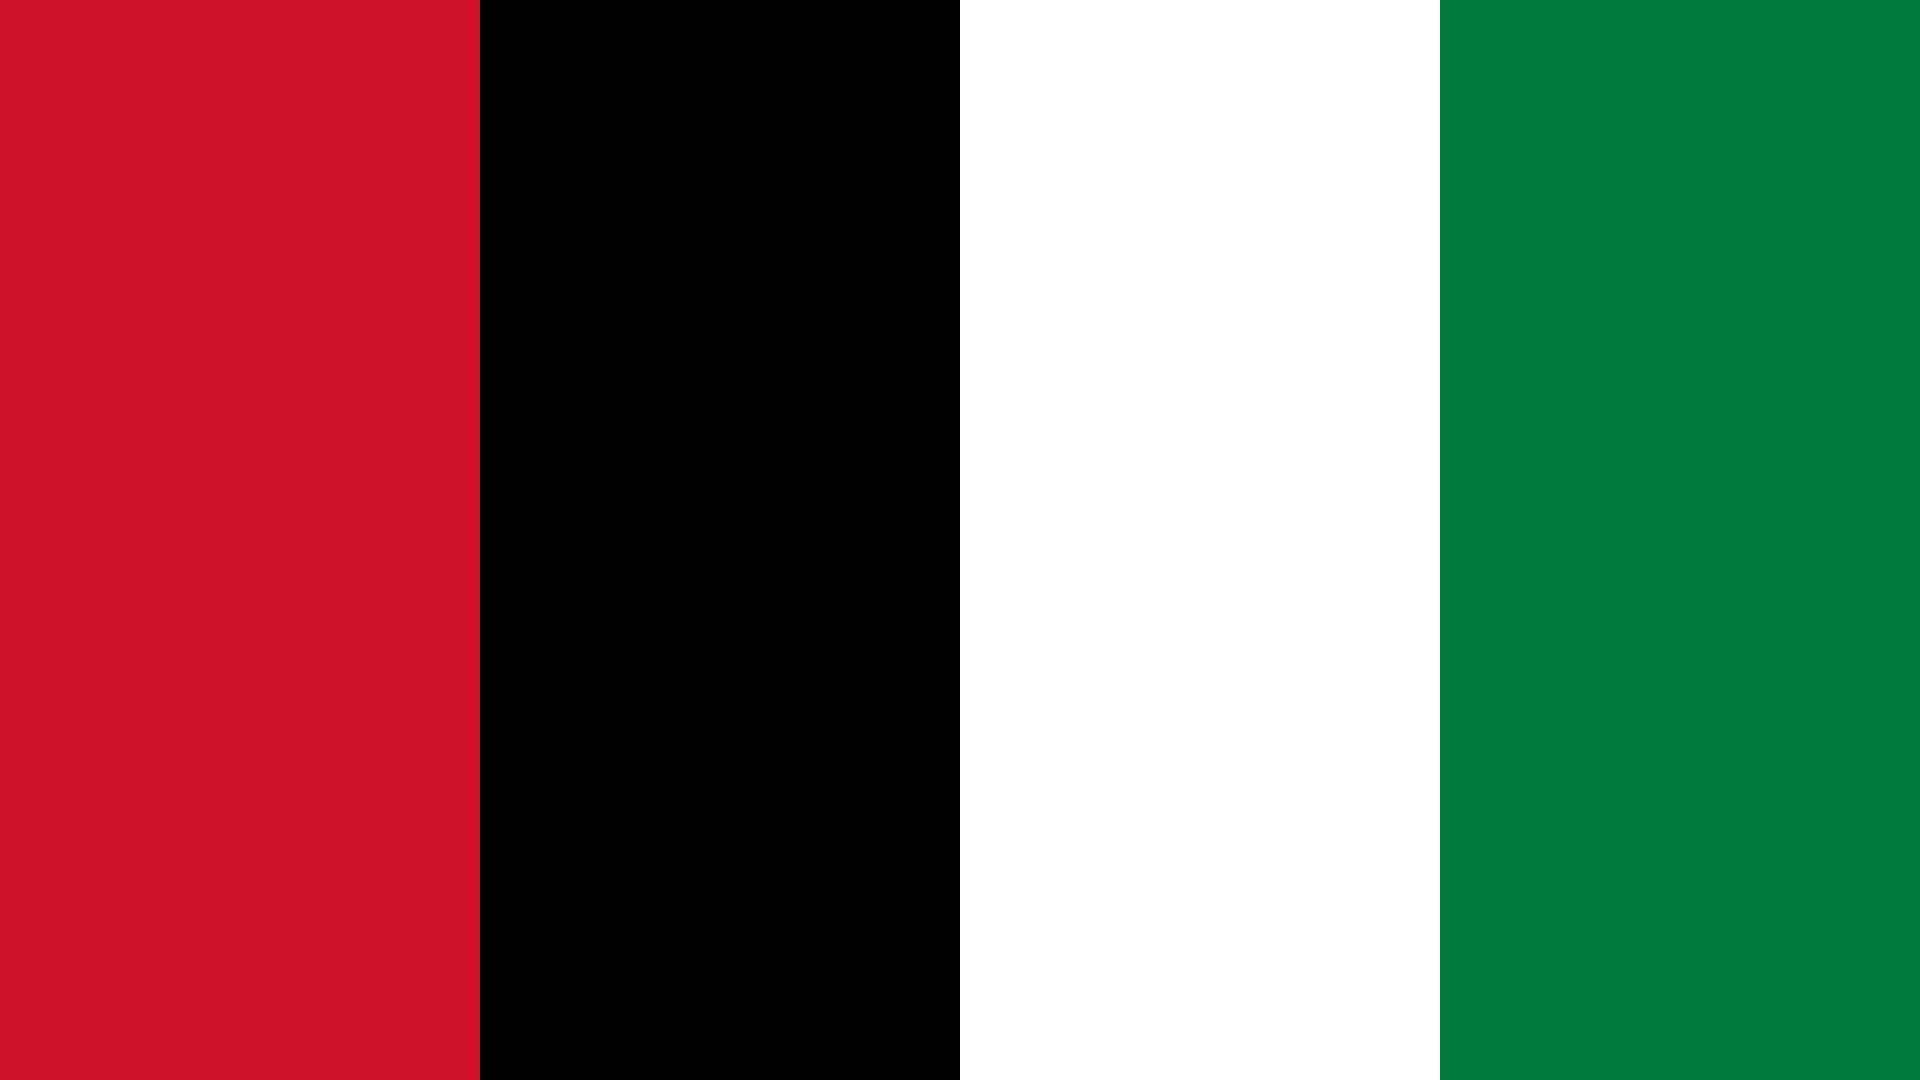 Palestine Flag Color Palette